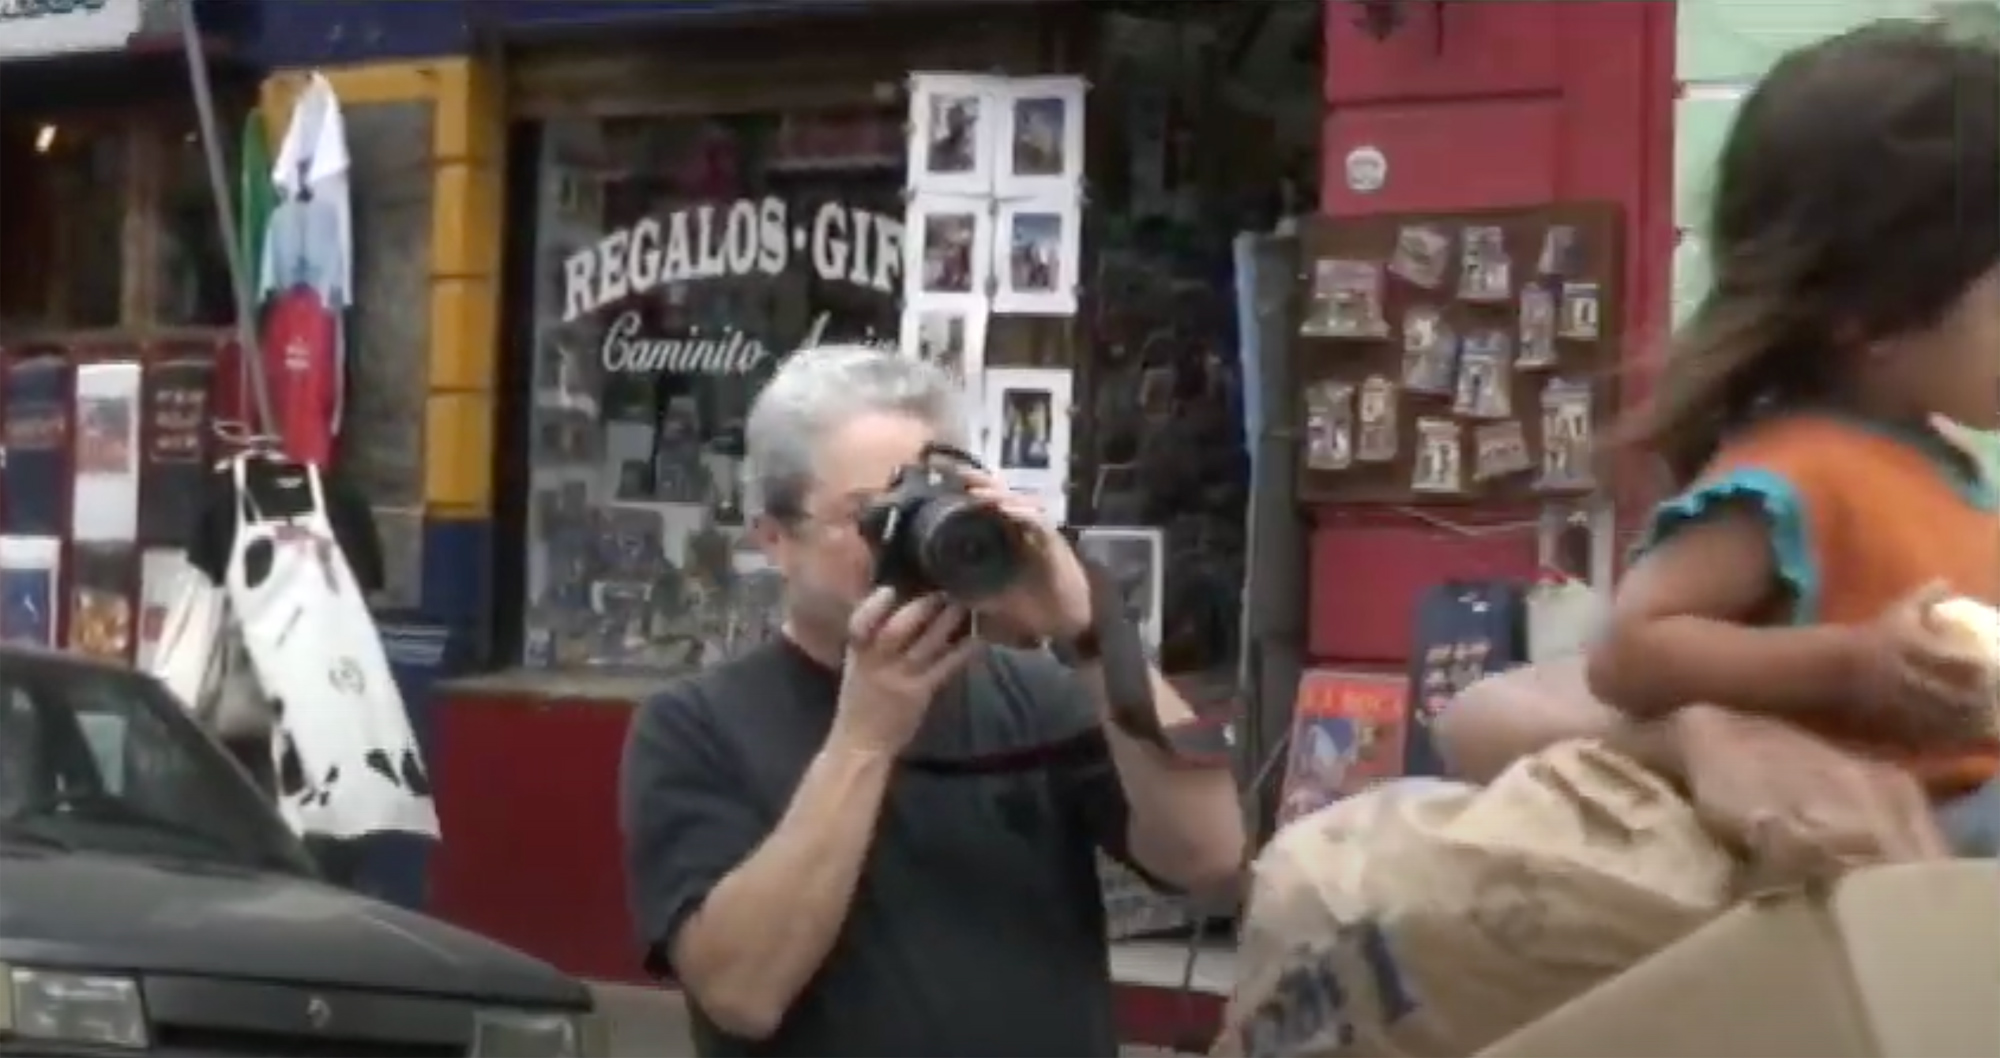 Street photography with Michael Reichmann